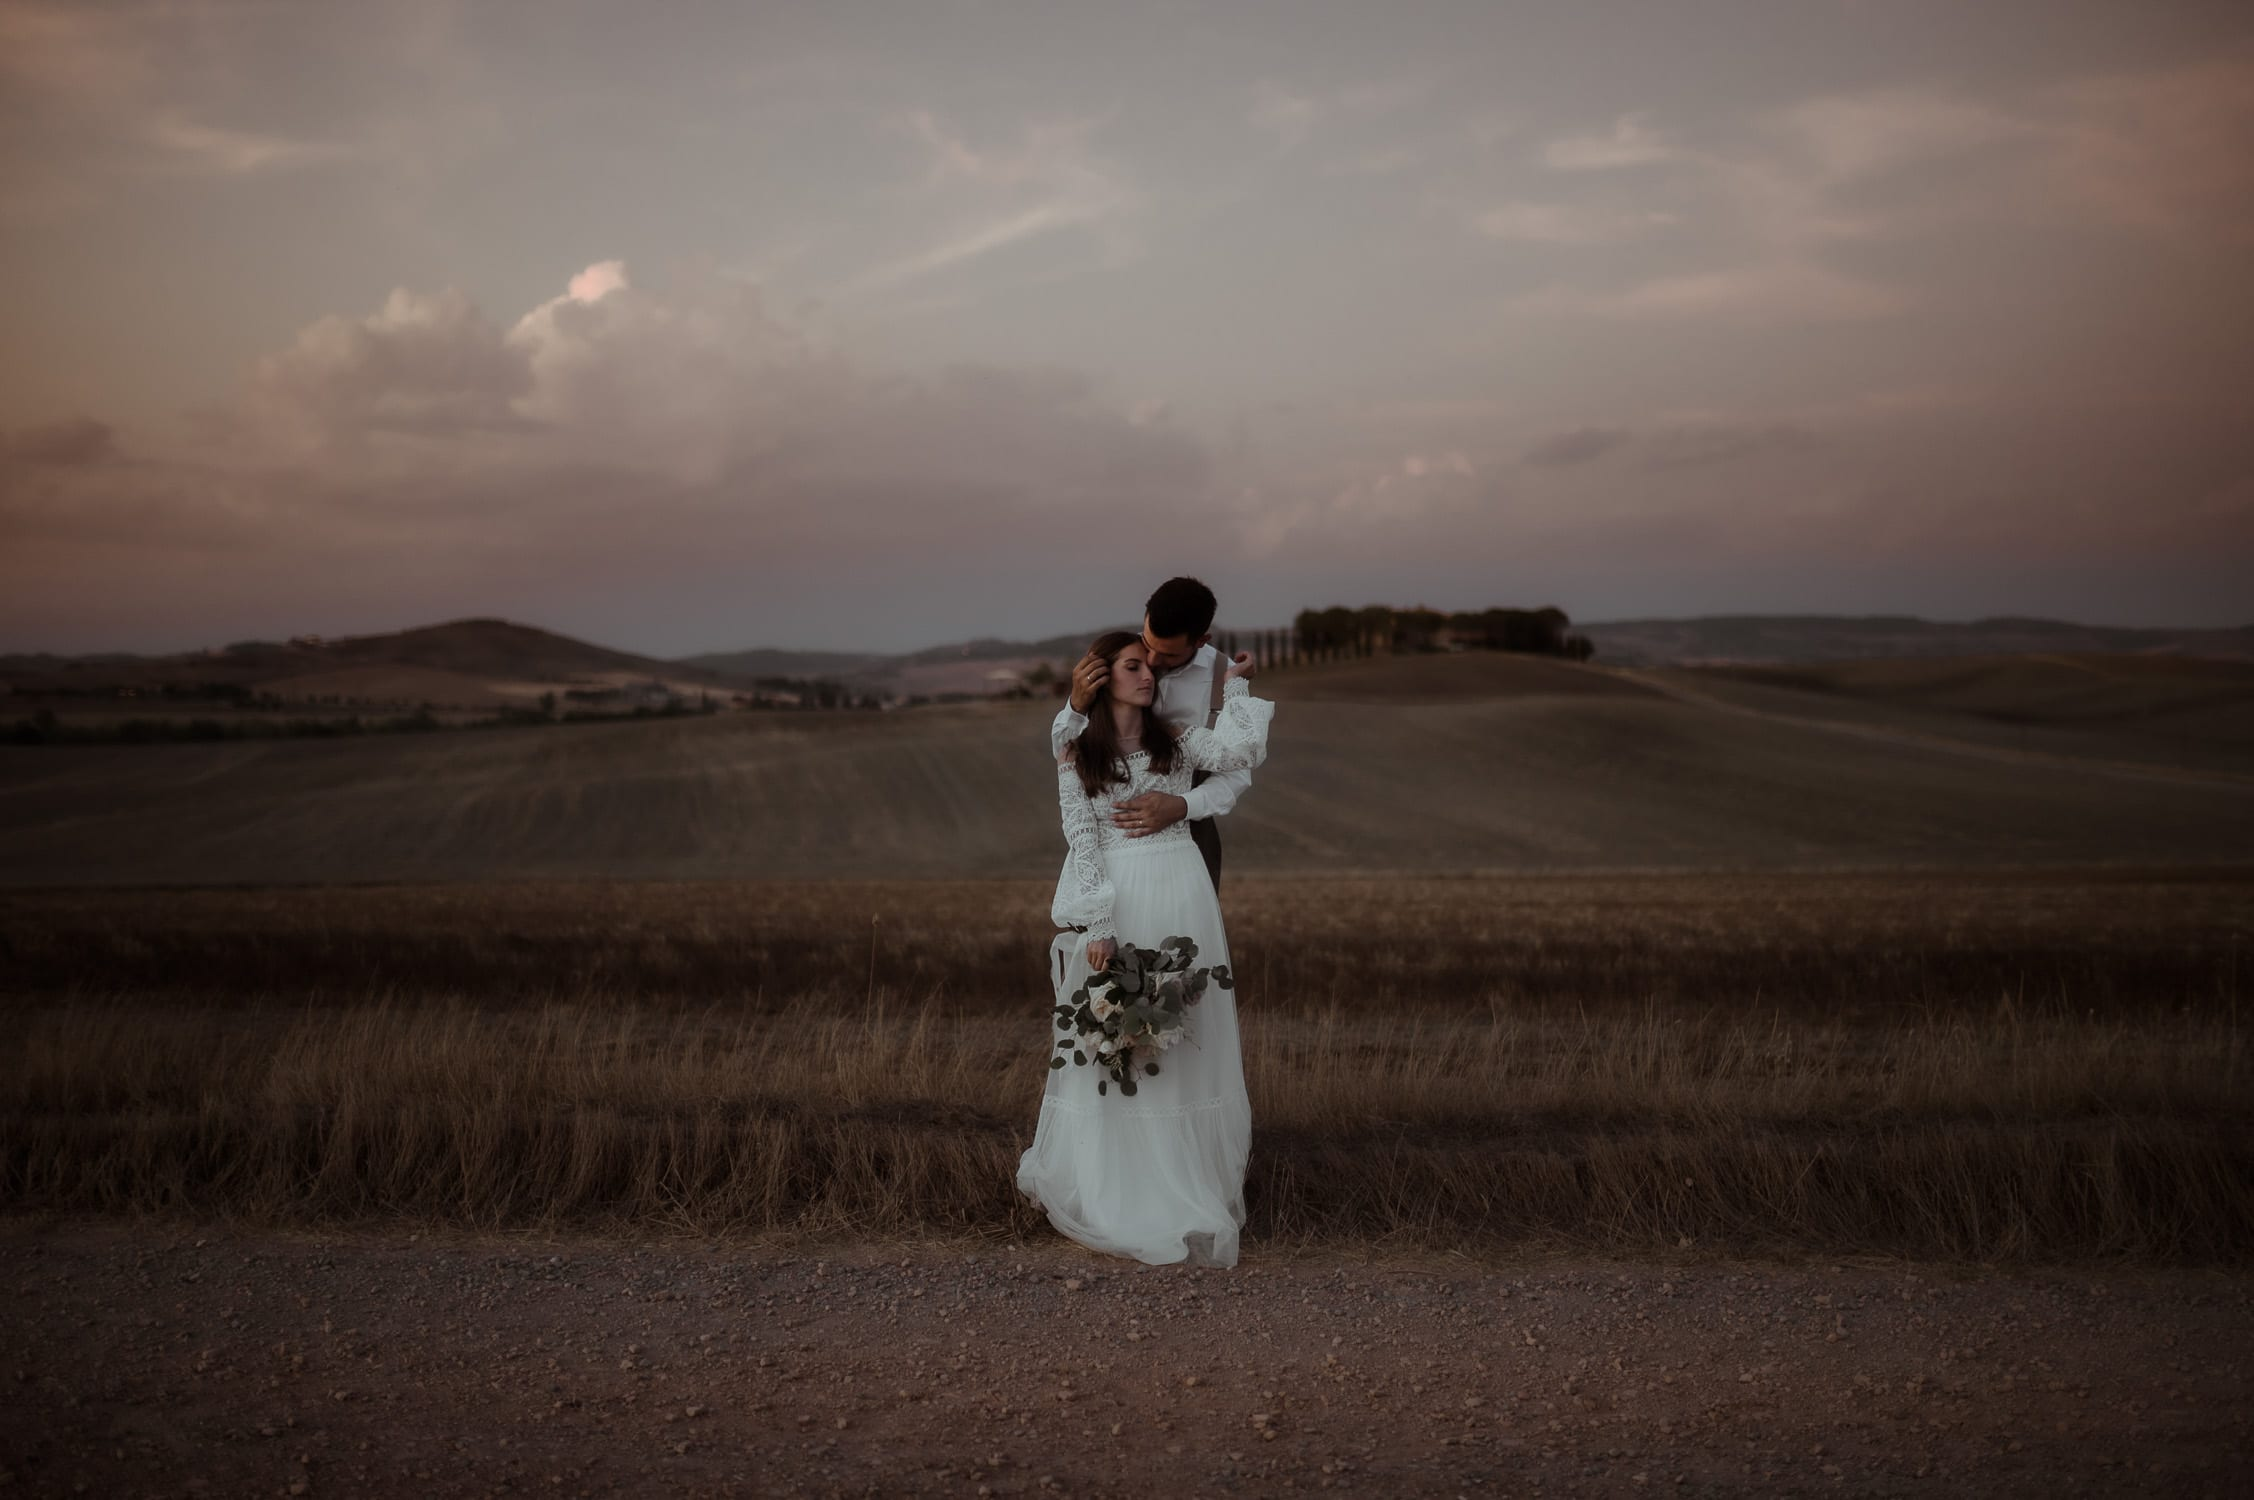 Tuscany Elopement Wedding | Bride and groom in a field at sunset at Pienza in Val d'Orcia